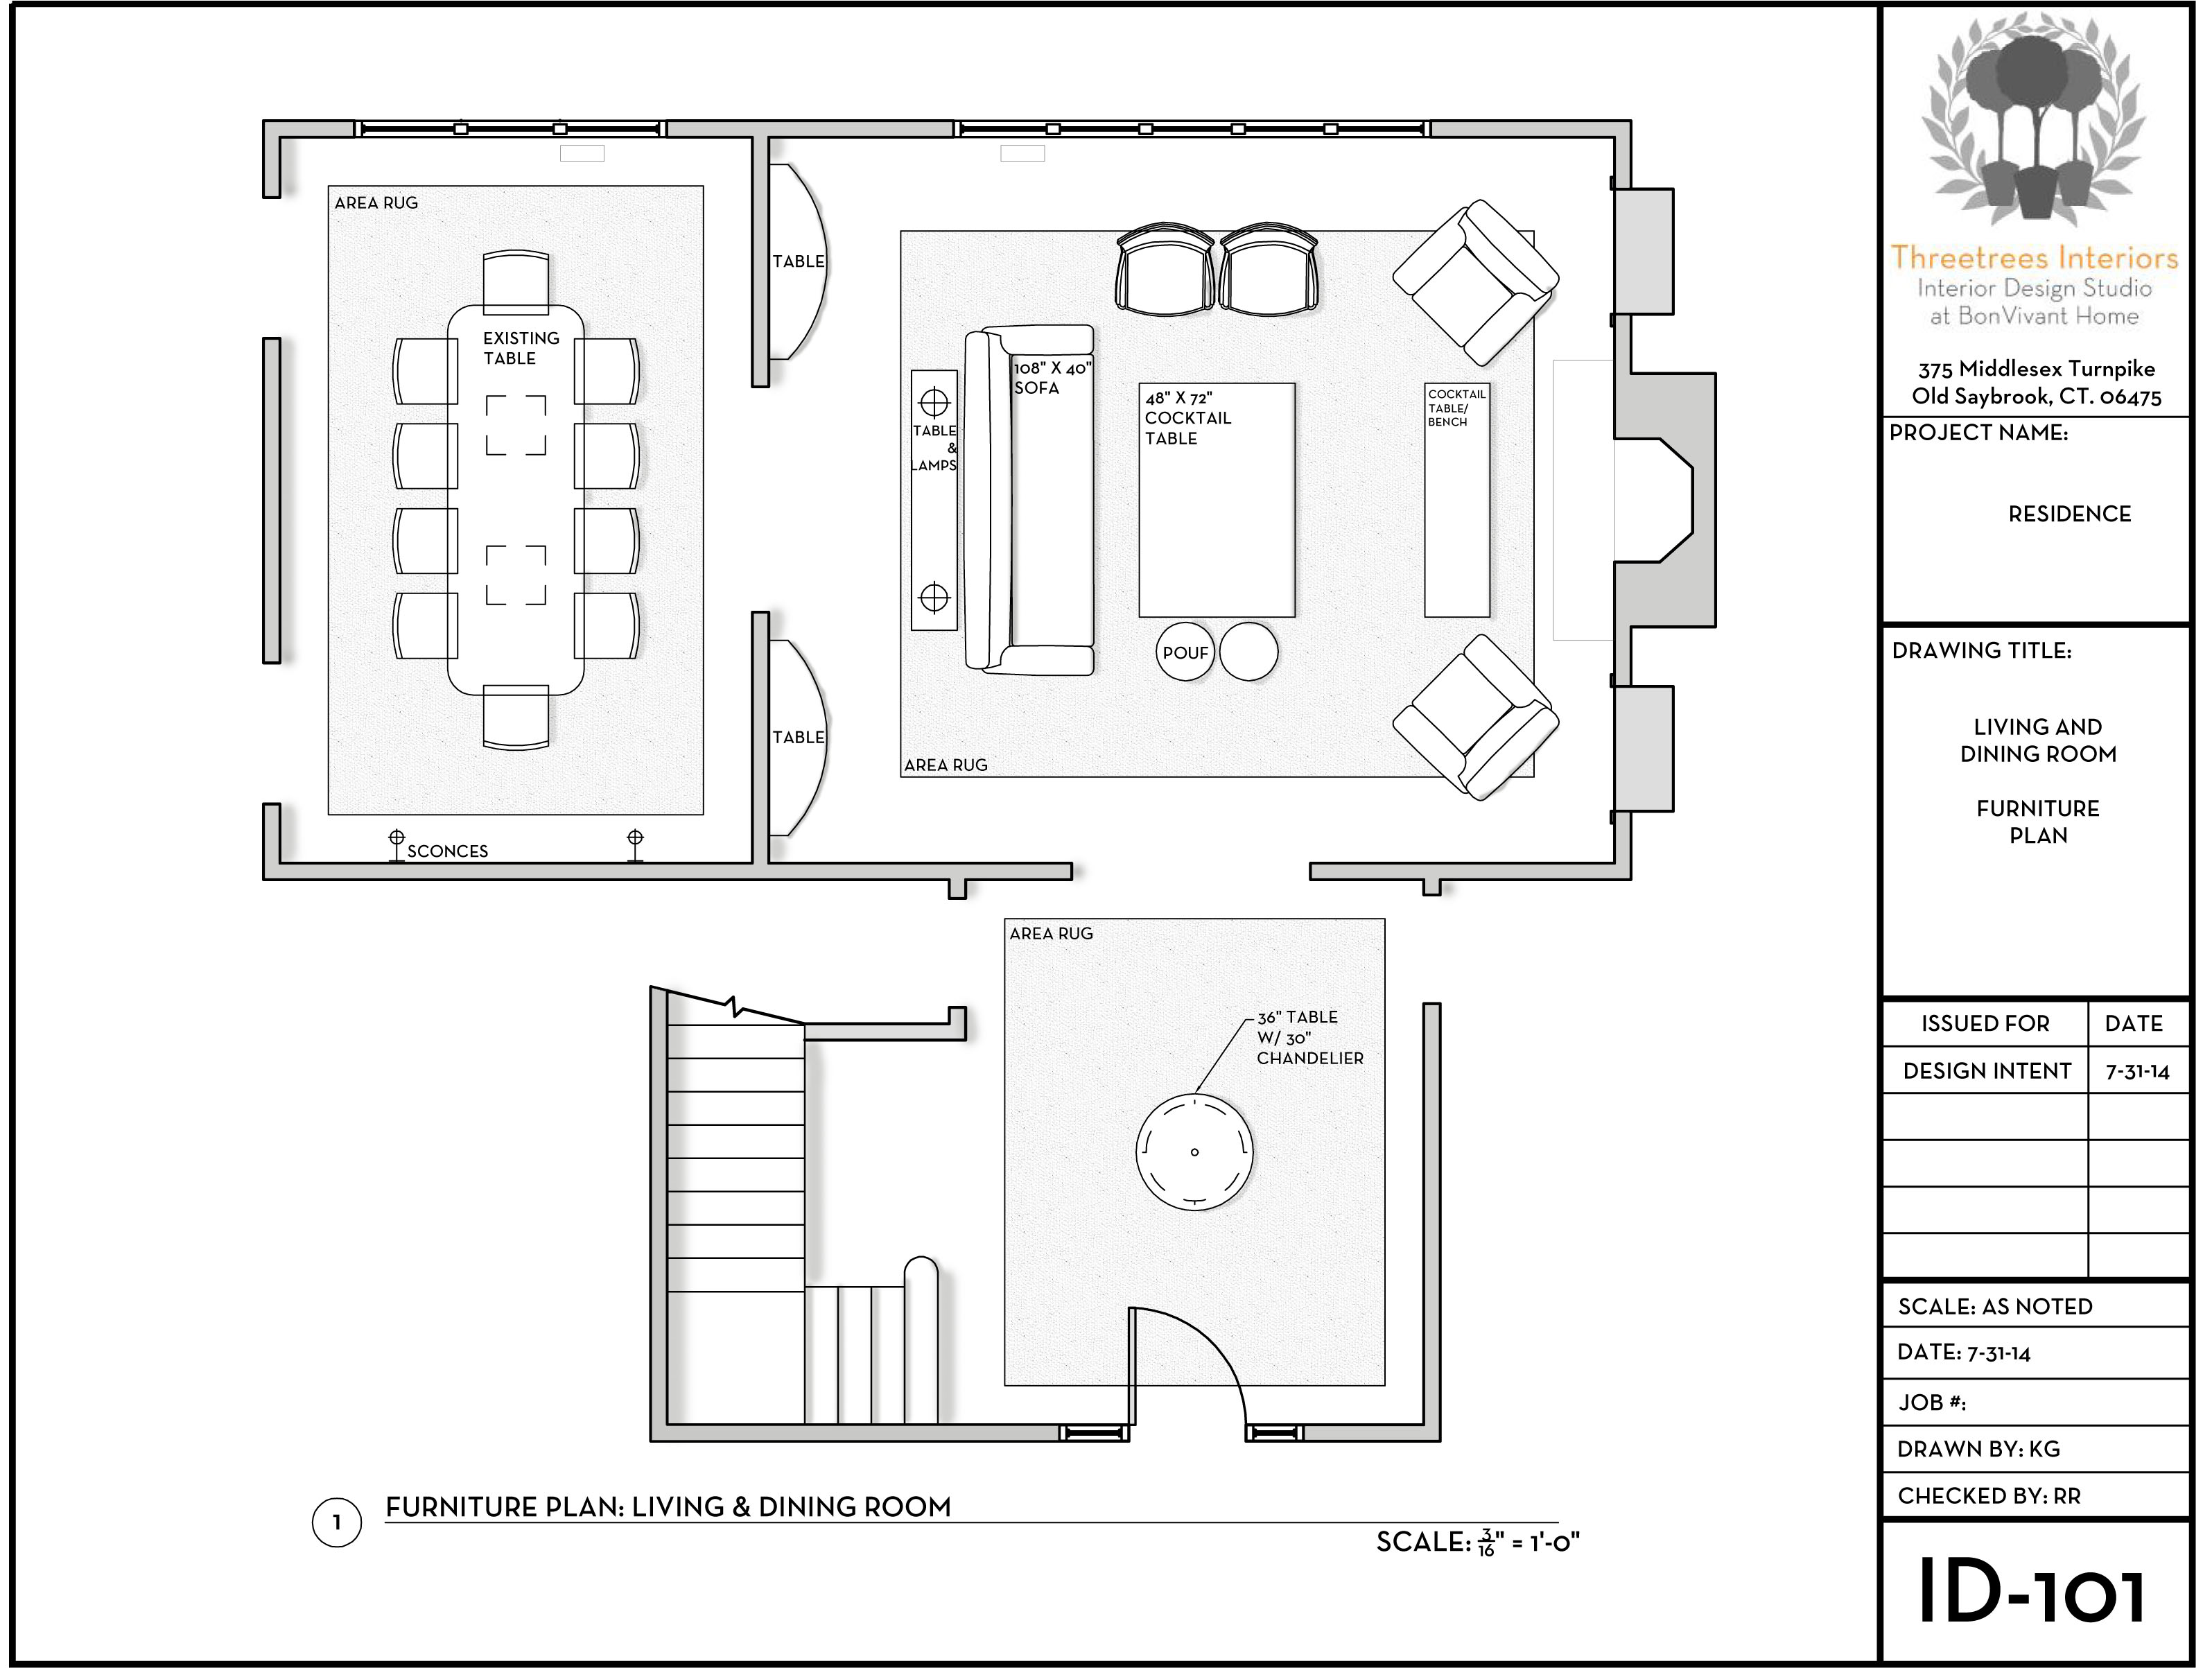 small resolution of space planning and schematic design threetrees interiorsdocument schematic designs to create a visual for design intent